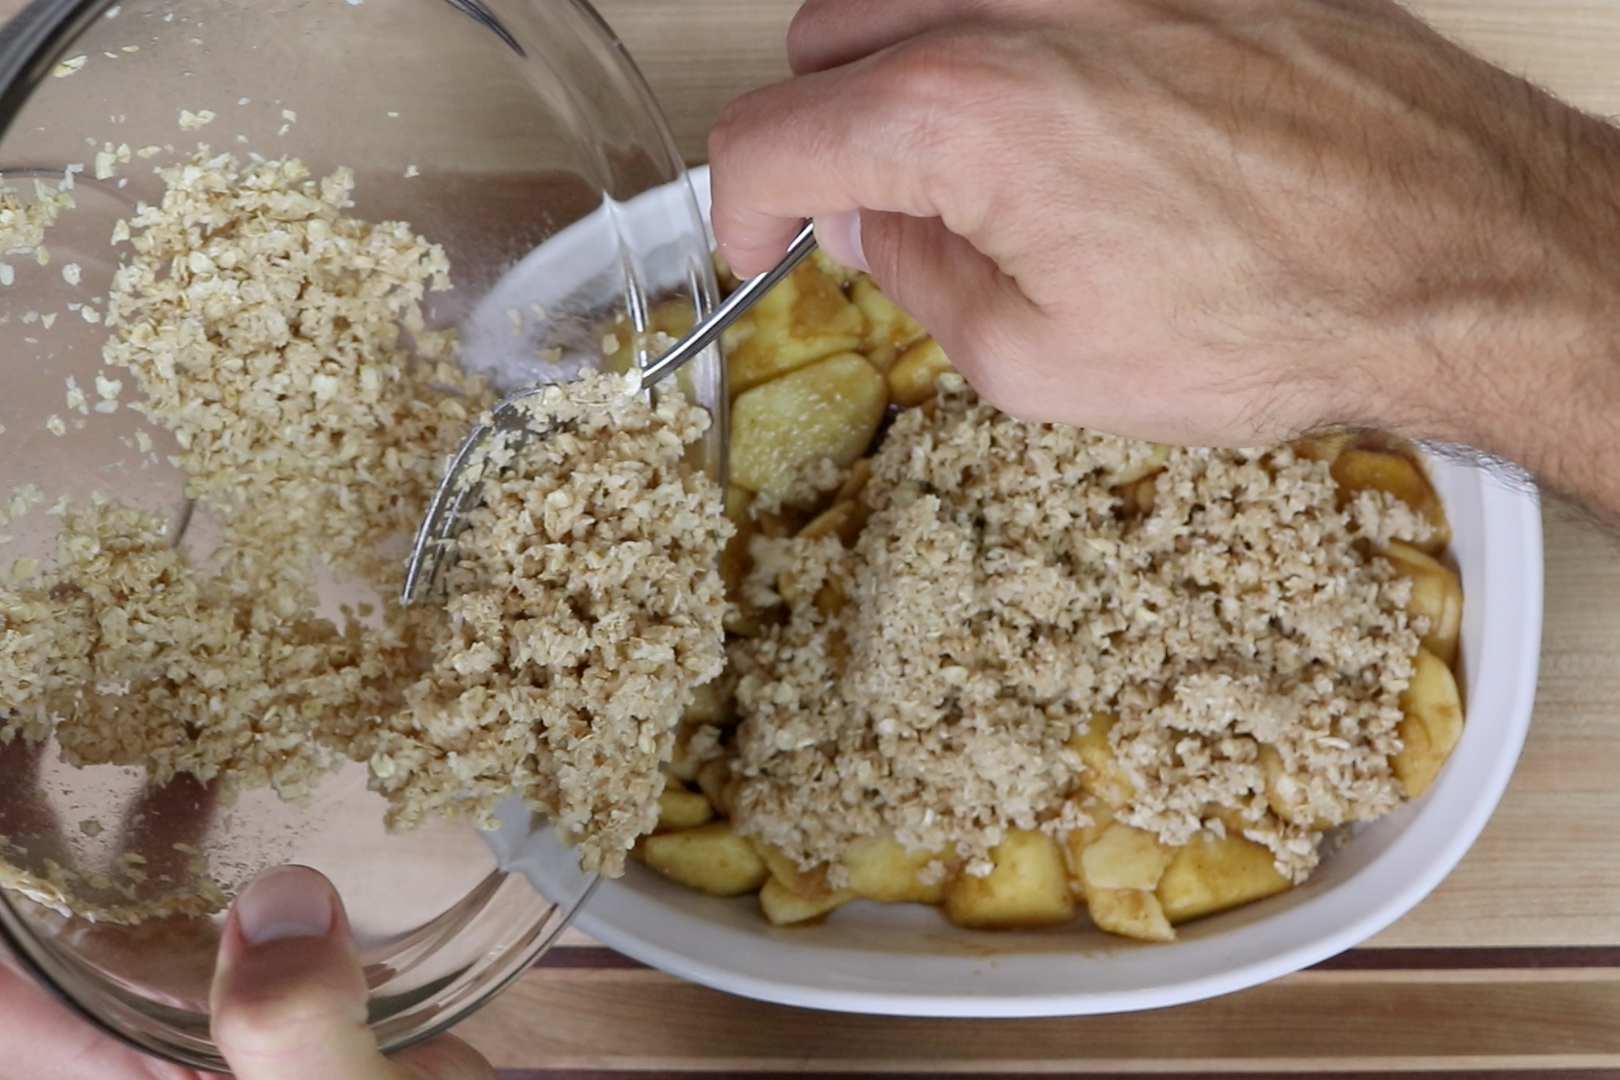 6. Gently spoon topping over apples and spread until apples are covered. -